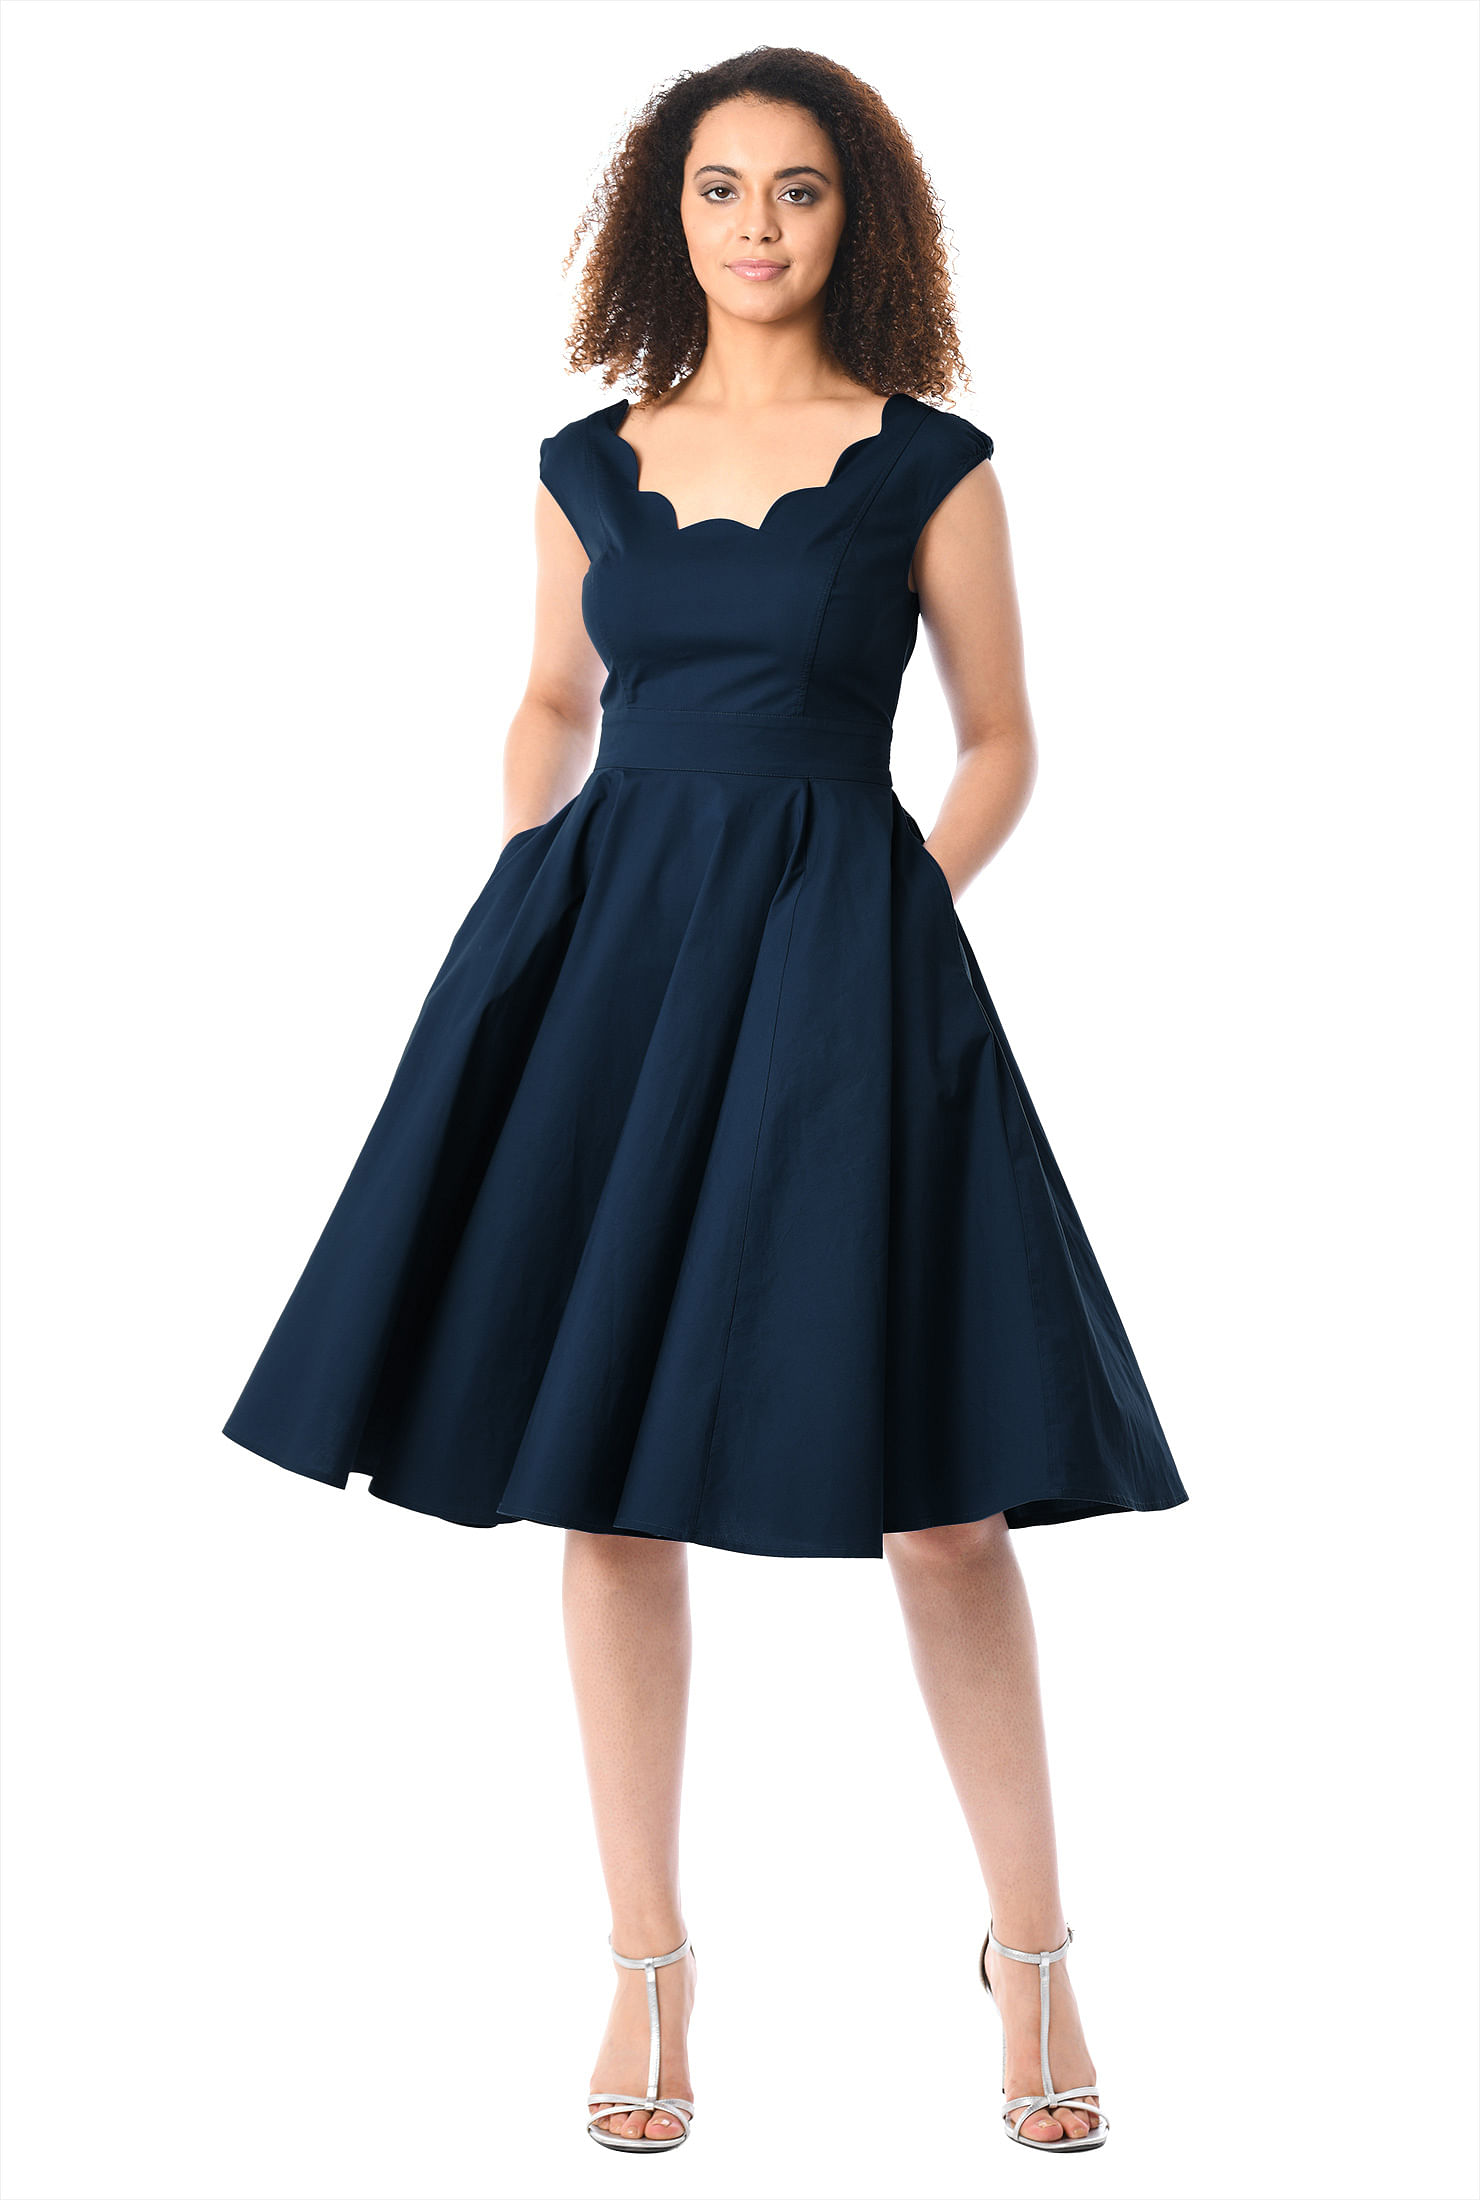 eShakti Women's Virginia dress